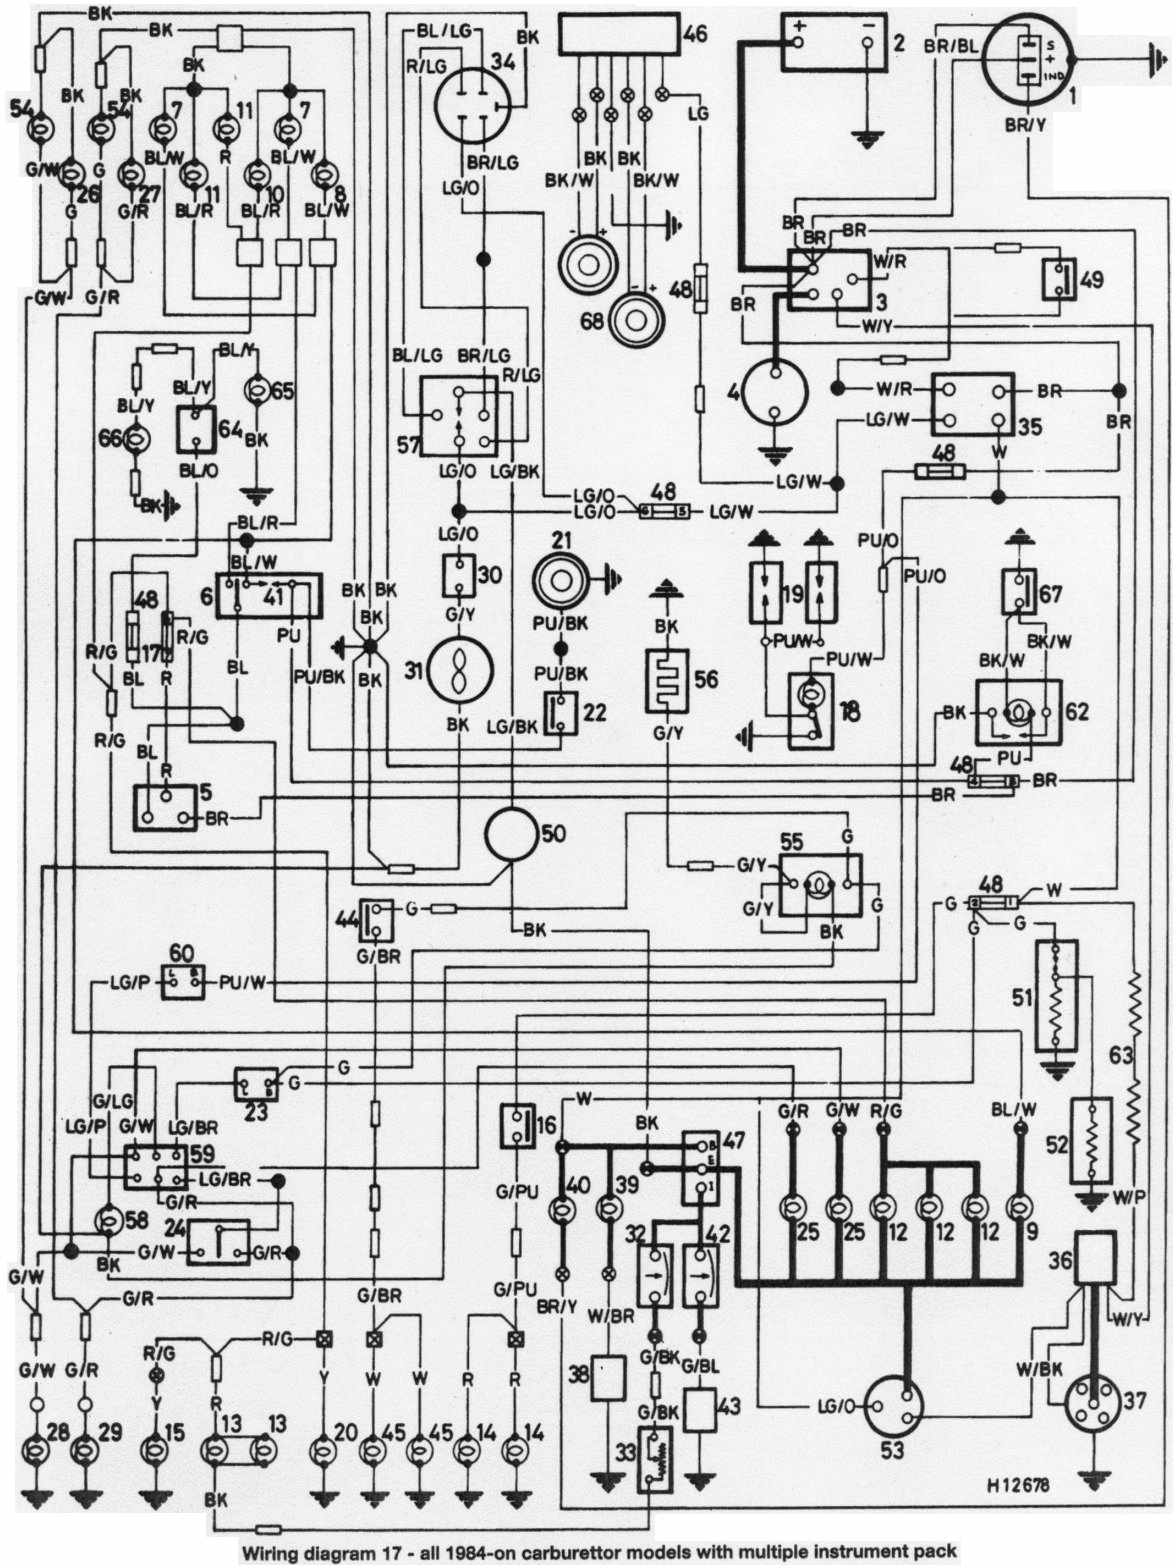 wiring diagram of 1984 onwards all mini series with multiple instrument pack?t\=1508499130 bmw mini wiring diagram gem e2 wiring diagrams \u2022 wiring diagrams 1979 volvo 242 dl wiring diagram at creativeand.co